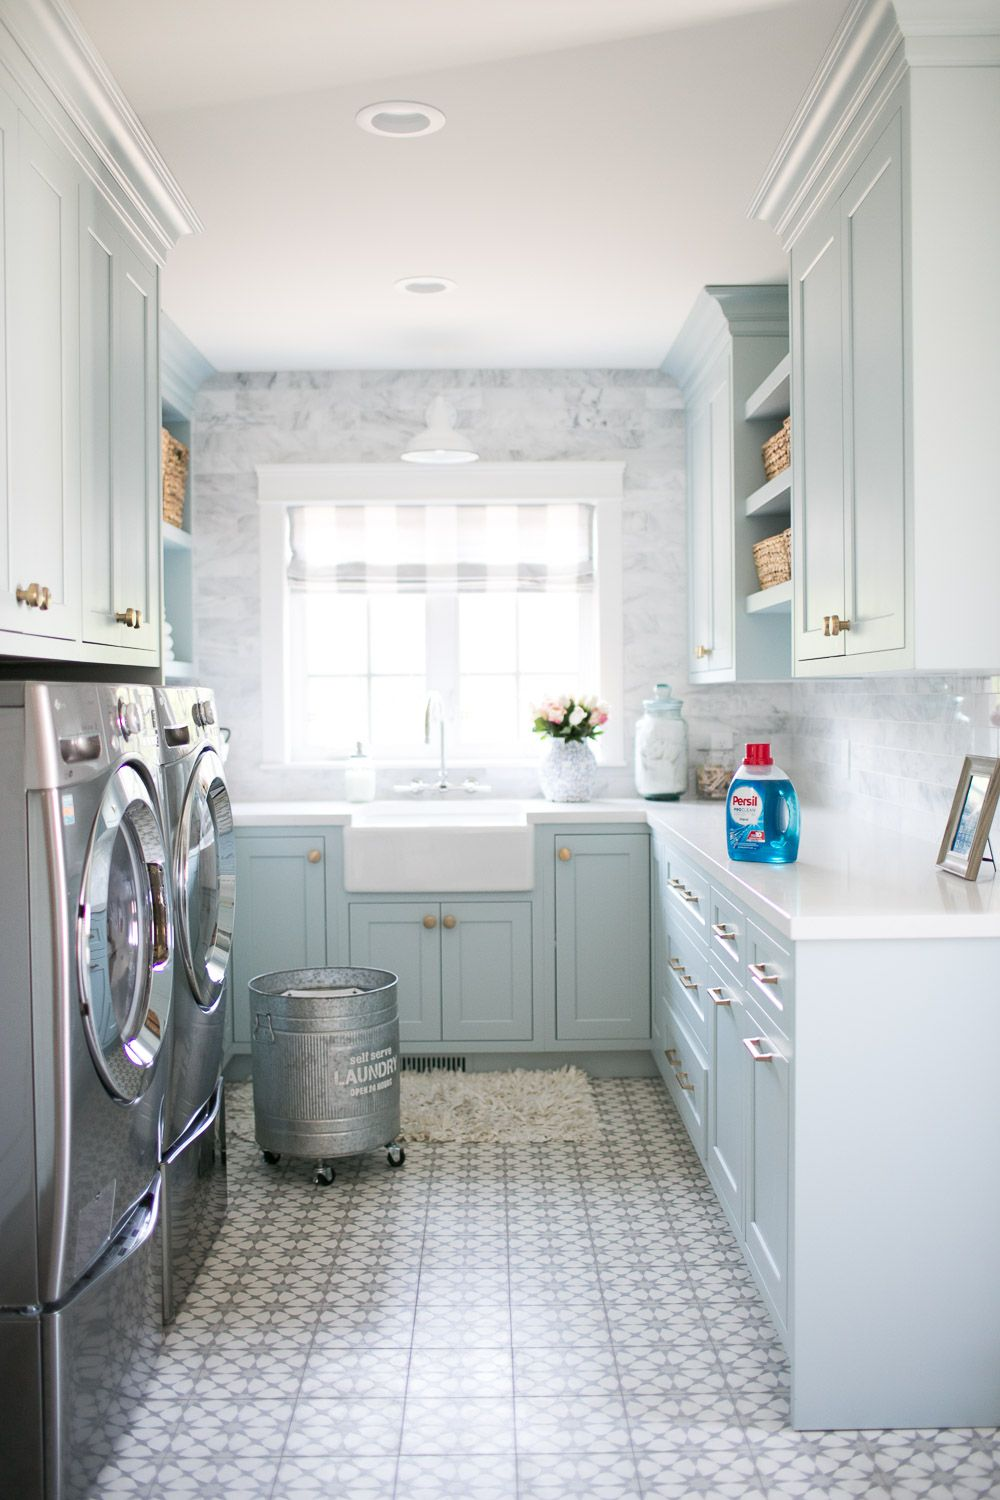 5 Tips For An Innovative Laundry Room Prospect Remodel